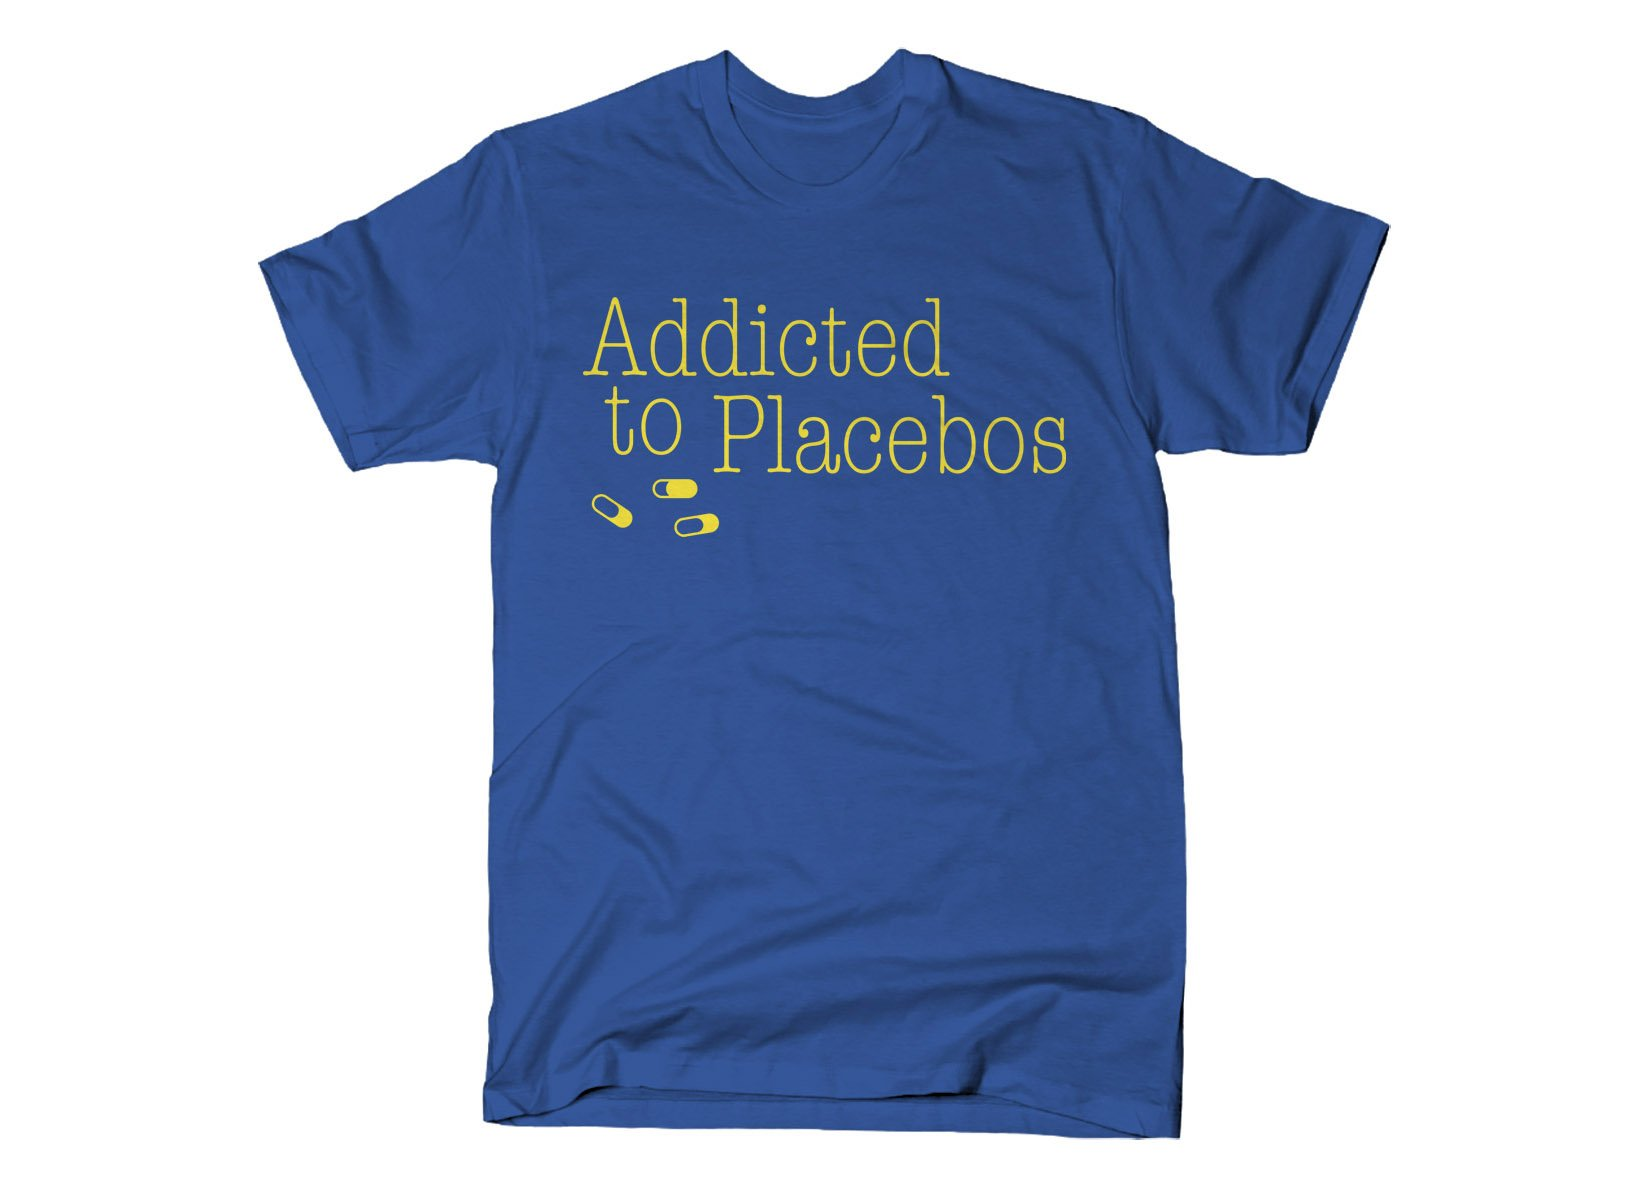 Addicted To Placebos on Mens T-Shirt